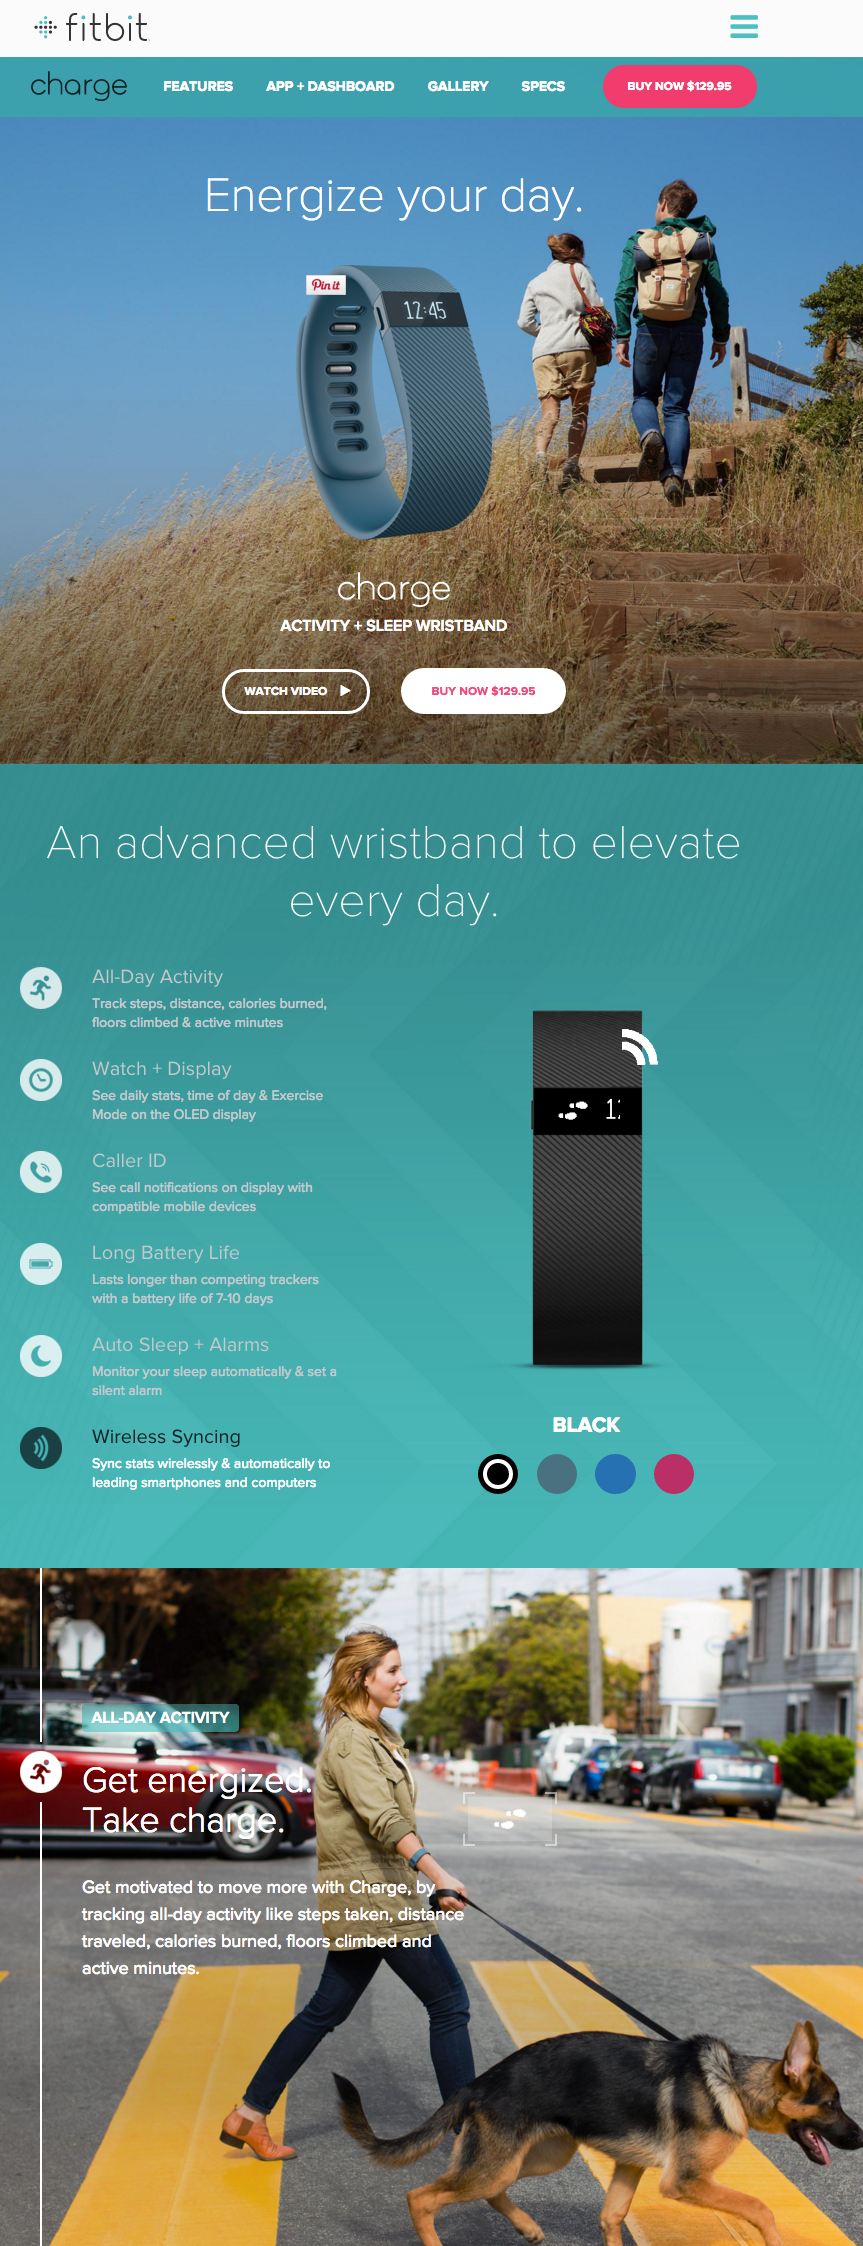 fitbit-charge-product-page.png